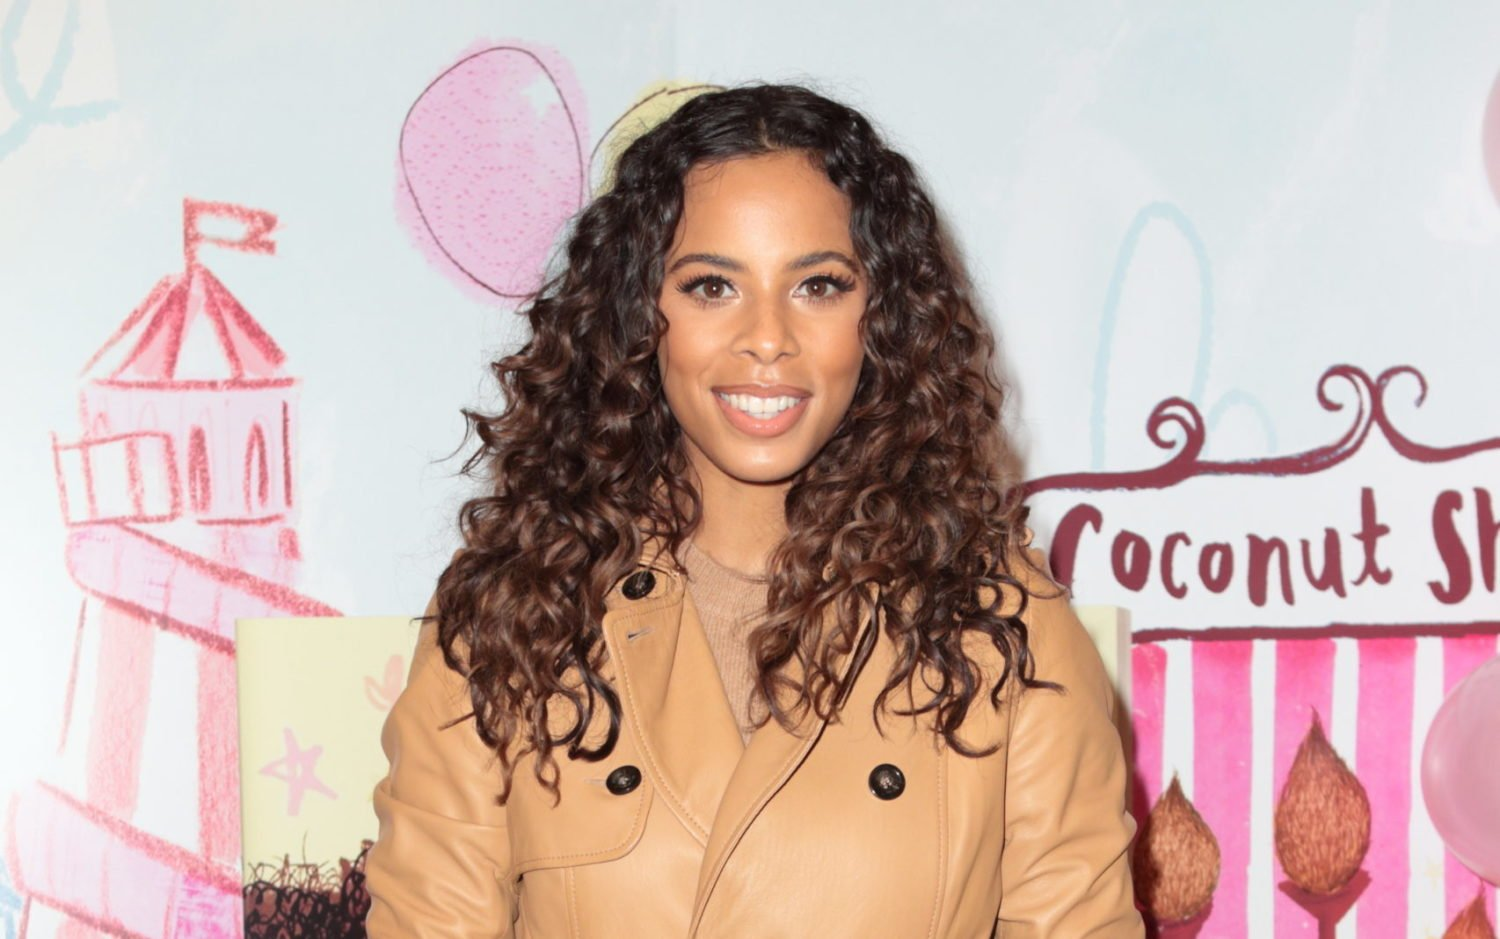 Rochelle Humes gives fans pregnancy update as she shares glimpse of growing bump